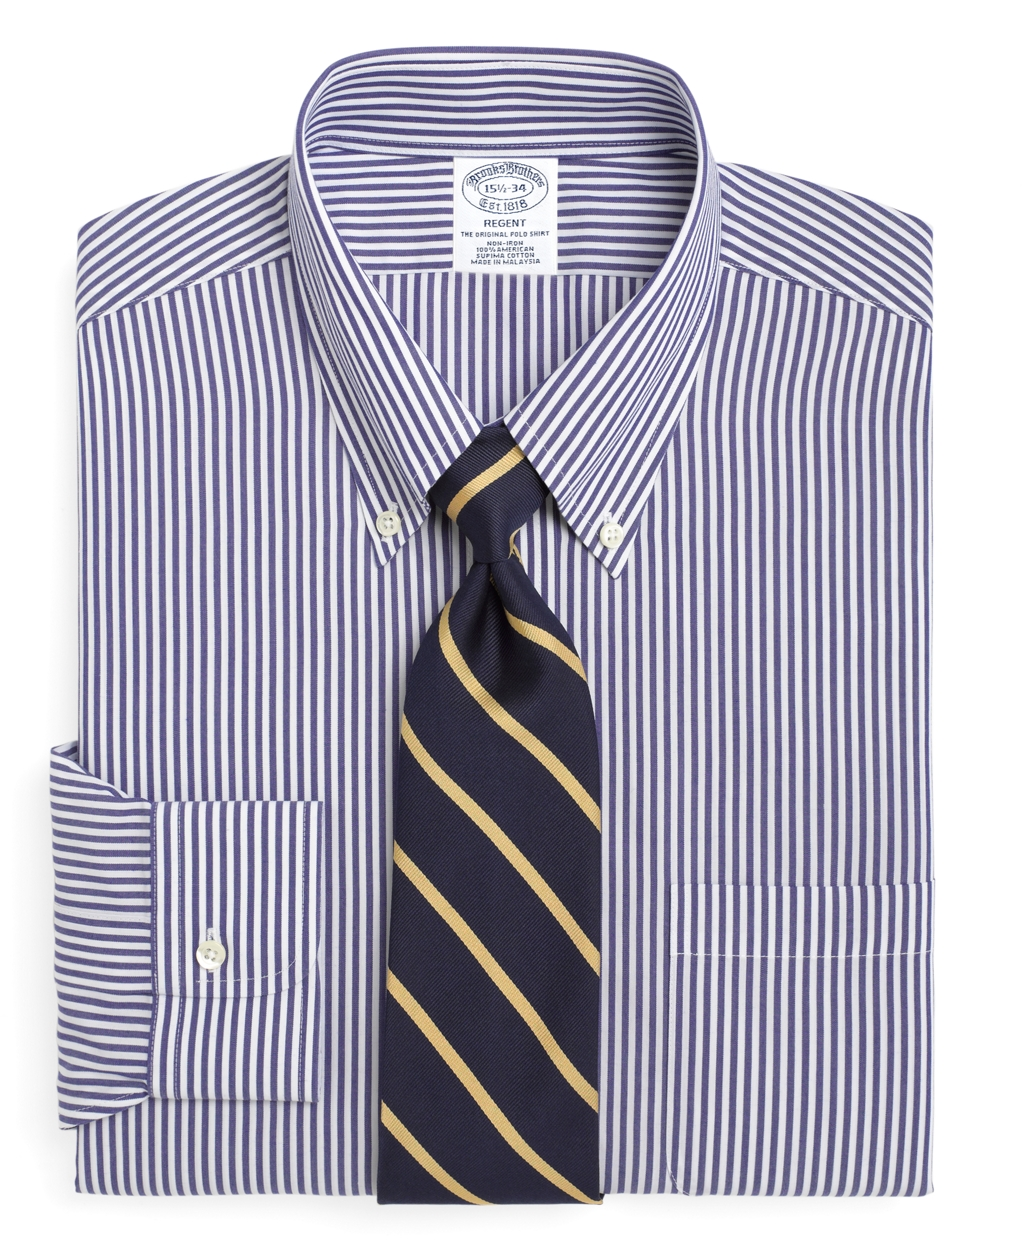 Men S Non Iron Slim Fit Blue And White Bengal Striped Dress Shirt Brooks Brothers